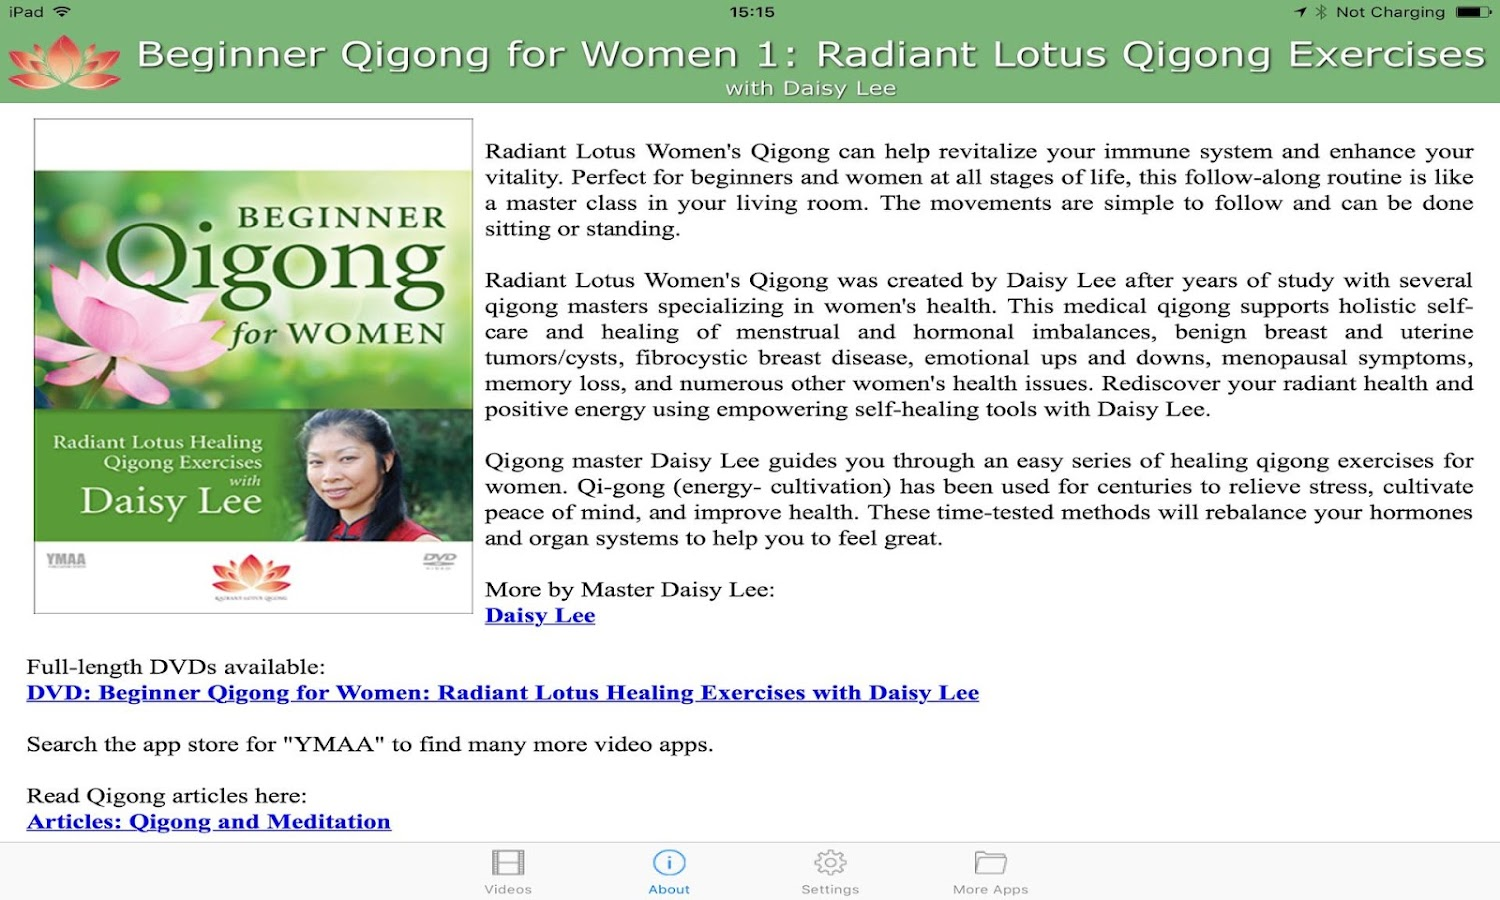 Beginner Qigong for Women 1 (YMAA)- screenshot